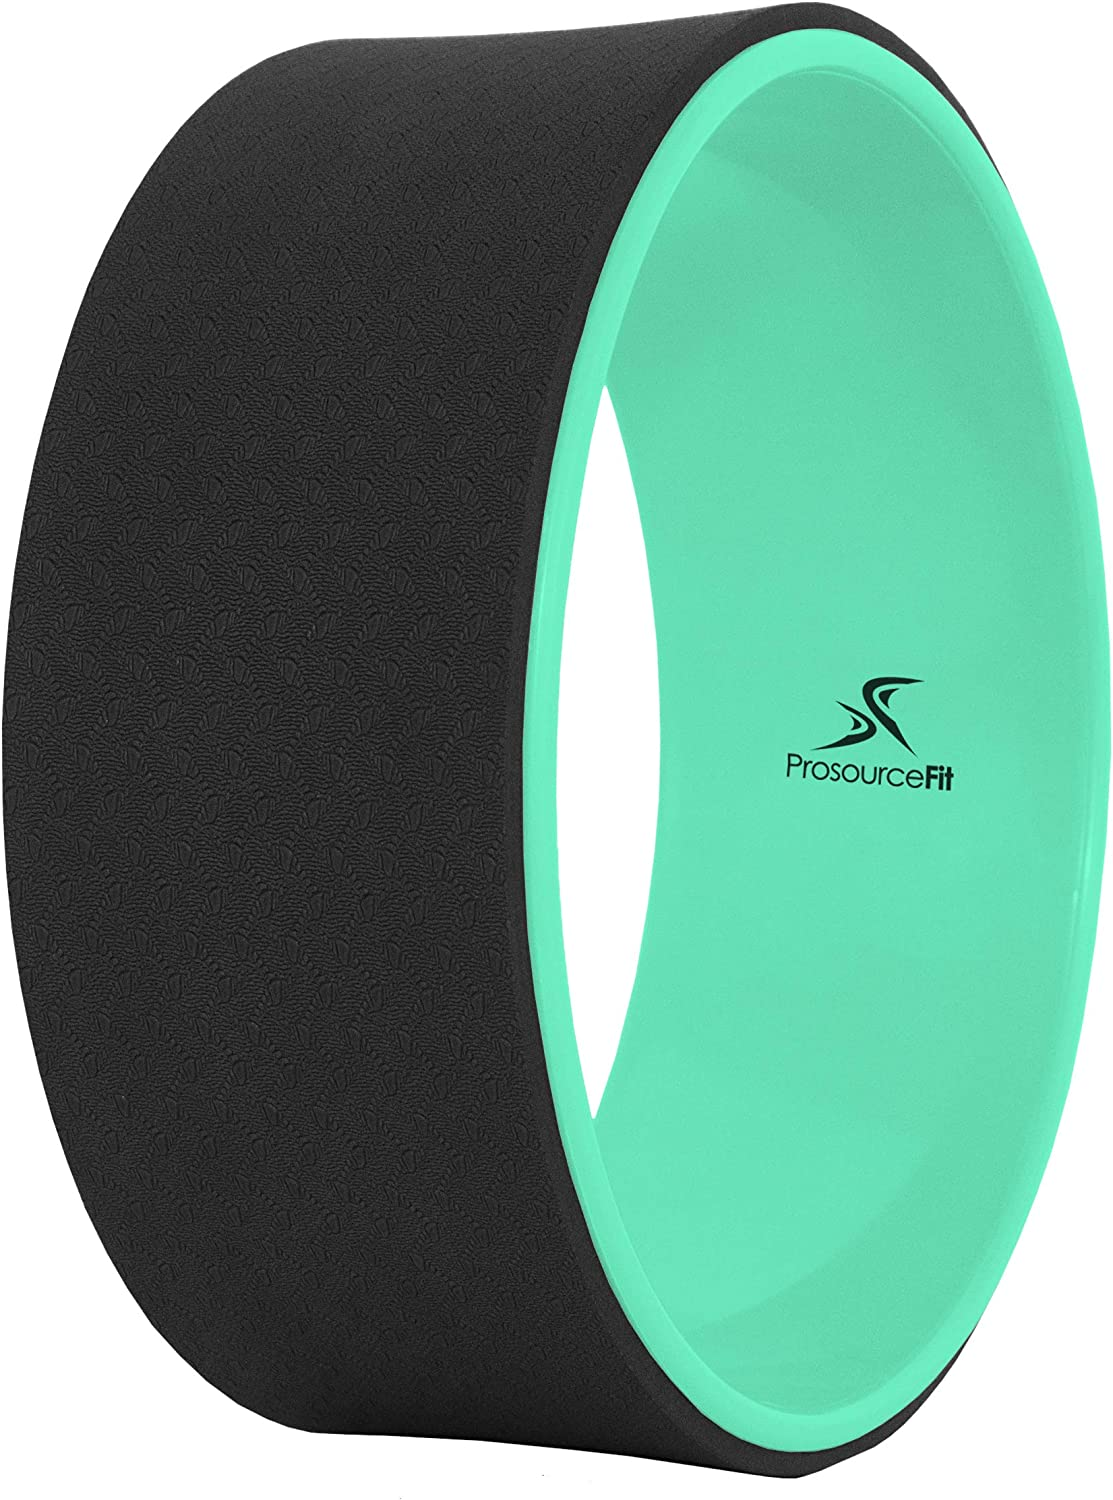 "Prosource Fit Yoga Wheel Prop 12"" for Improving Yoga Poses & Backbends, Flexibility, Balance, Stretching, Relaxation, Black/White"